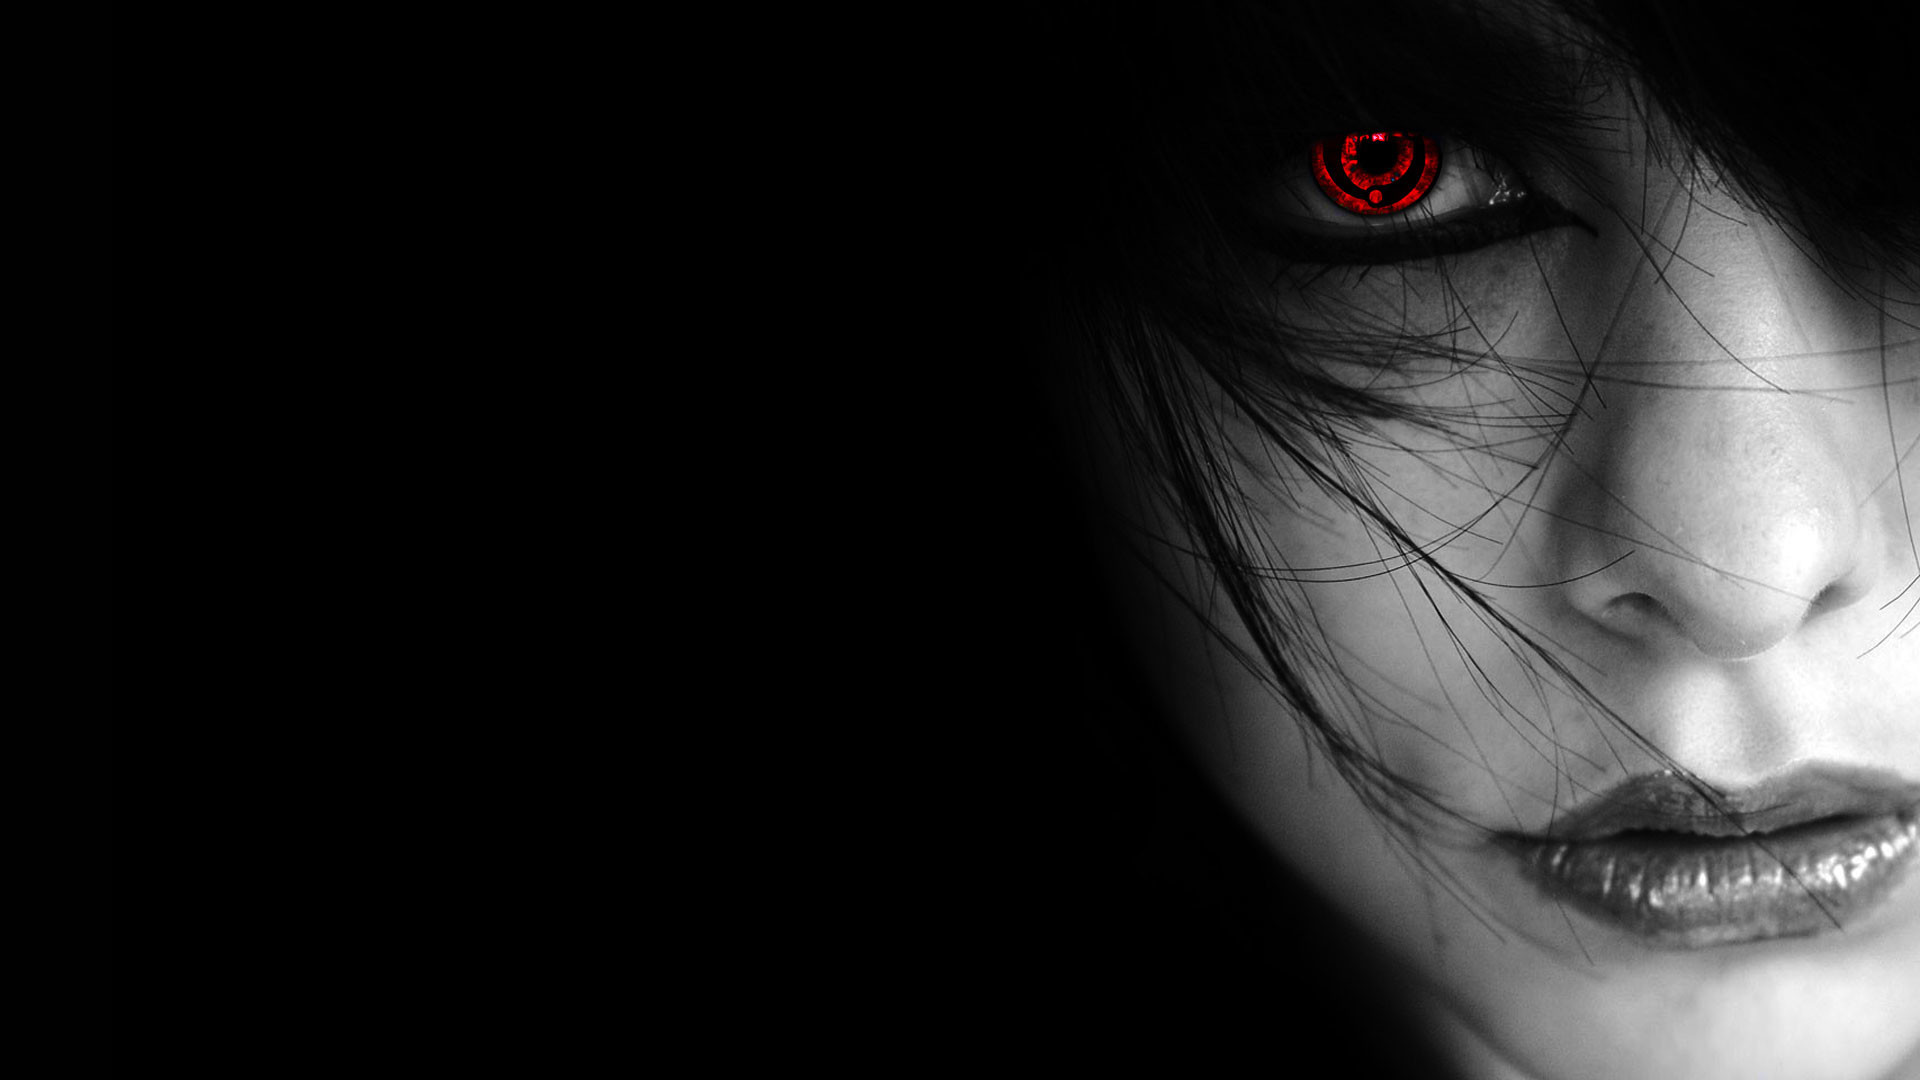 hd pics photos cute girl with red eye neon hd quality desktop background  wallpaper